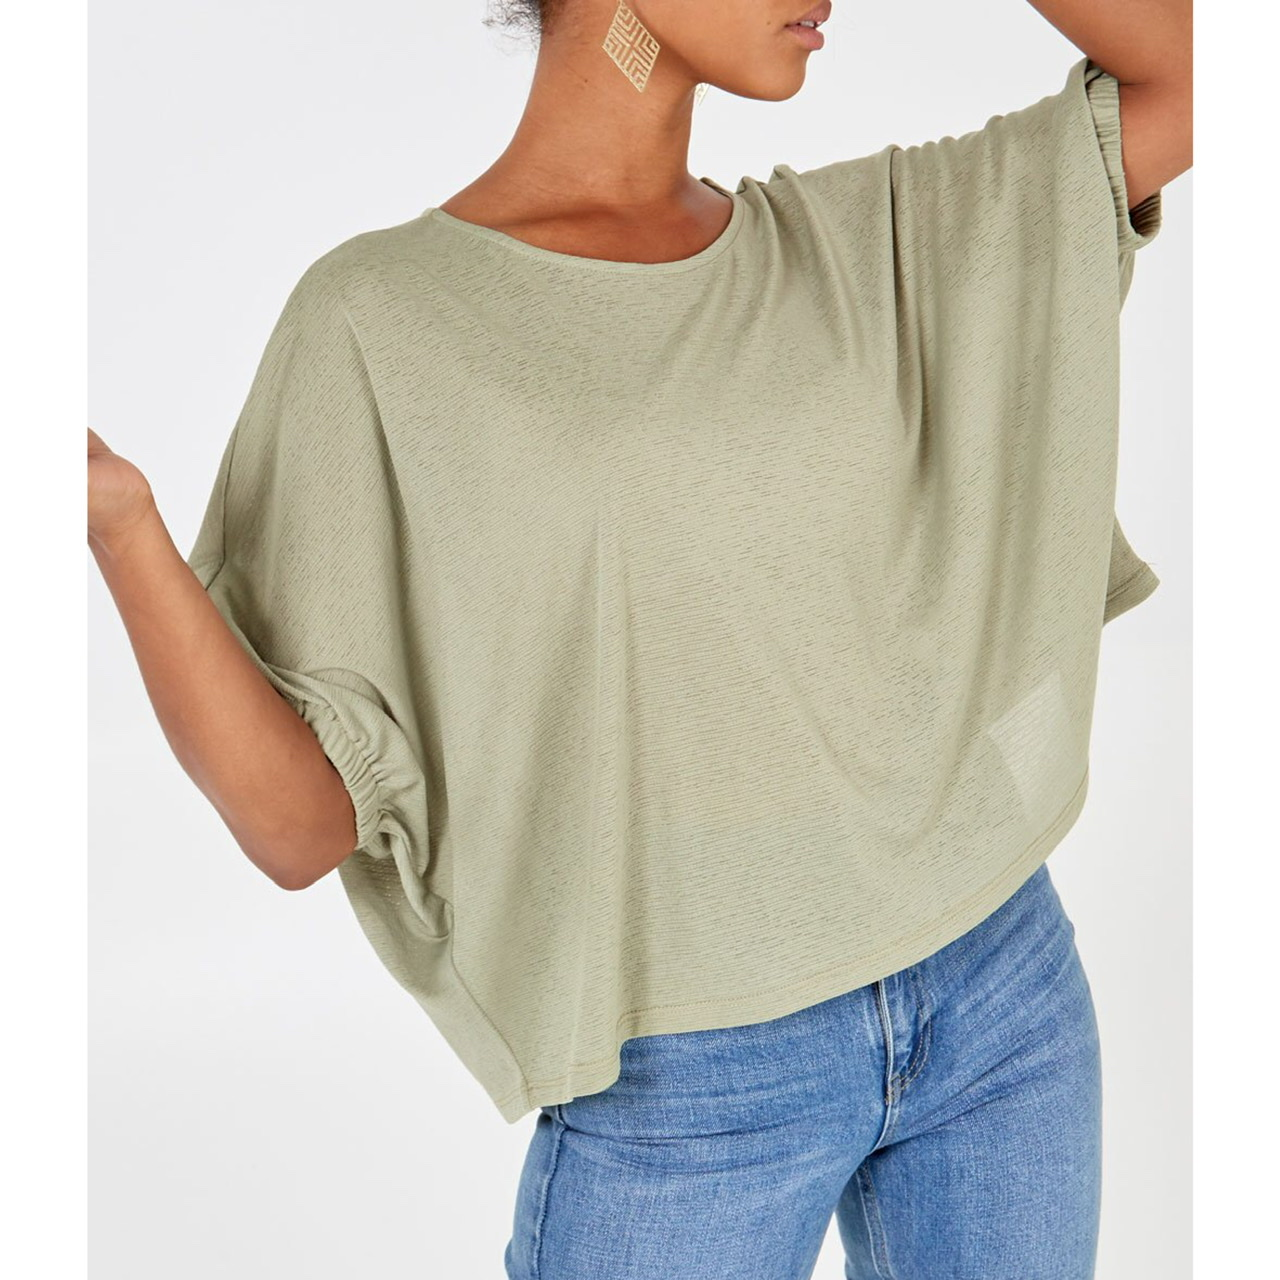 Light Khaki 3/4 Sleeve Crew Neck Top